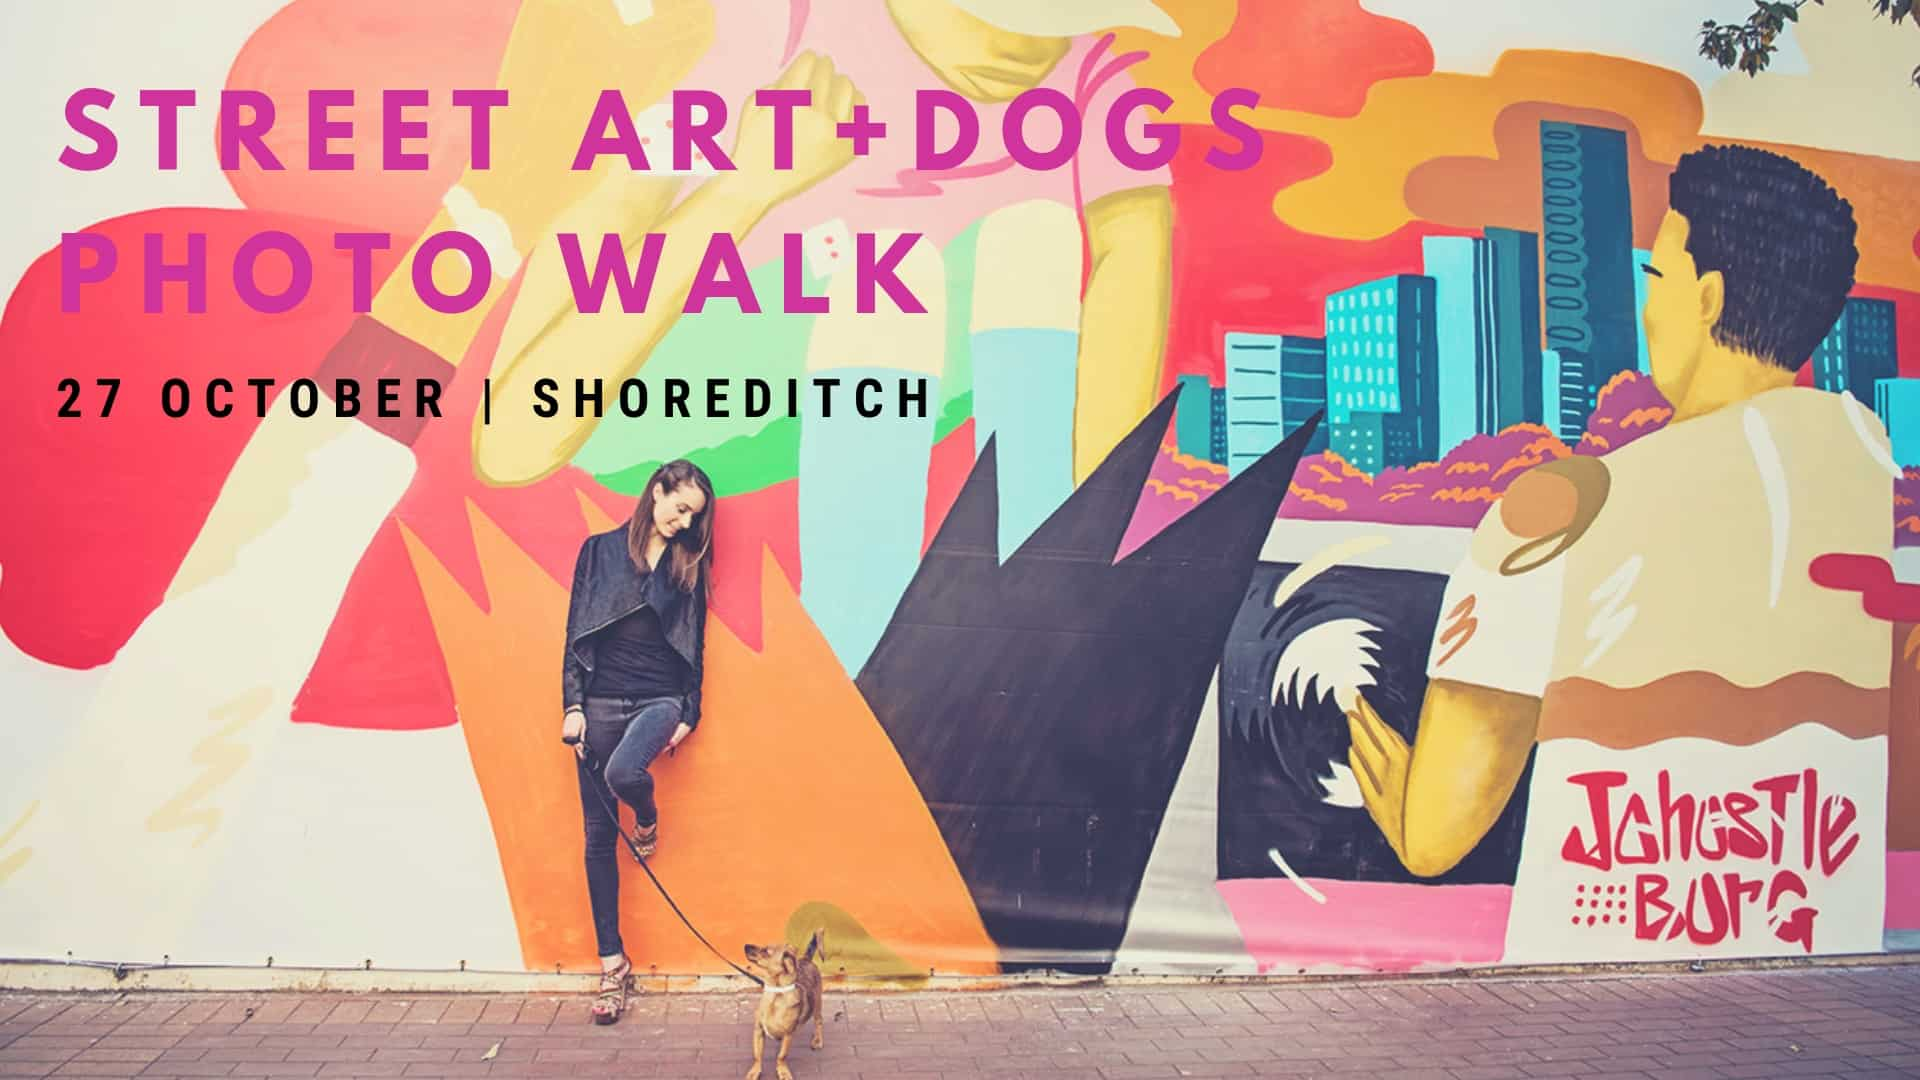 Shoreditch Street Art + Dogs Photo Walk - London Dog Events